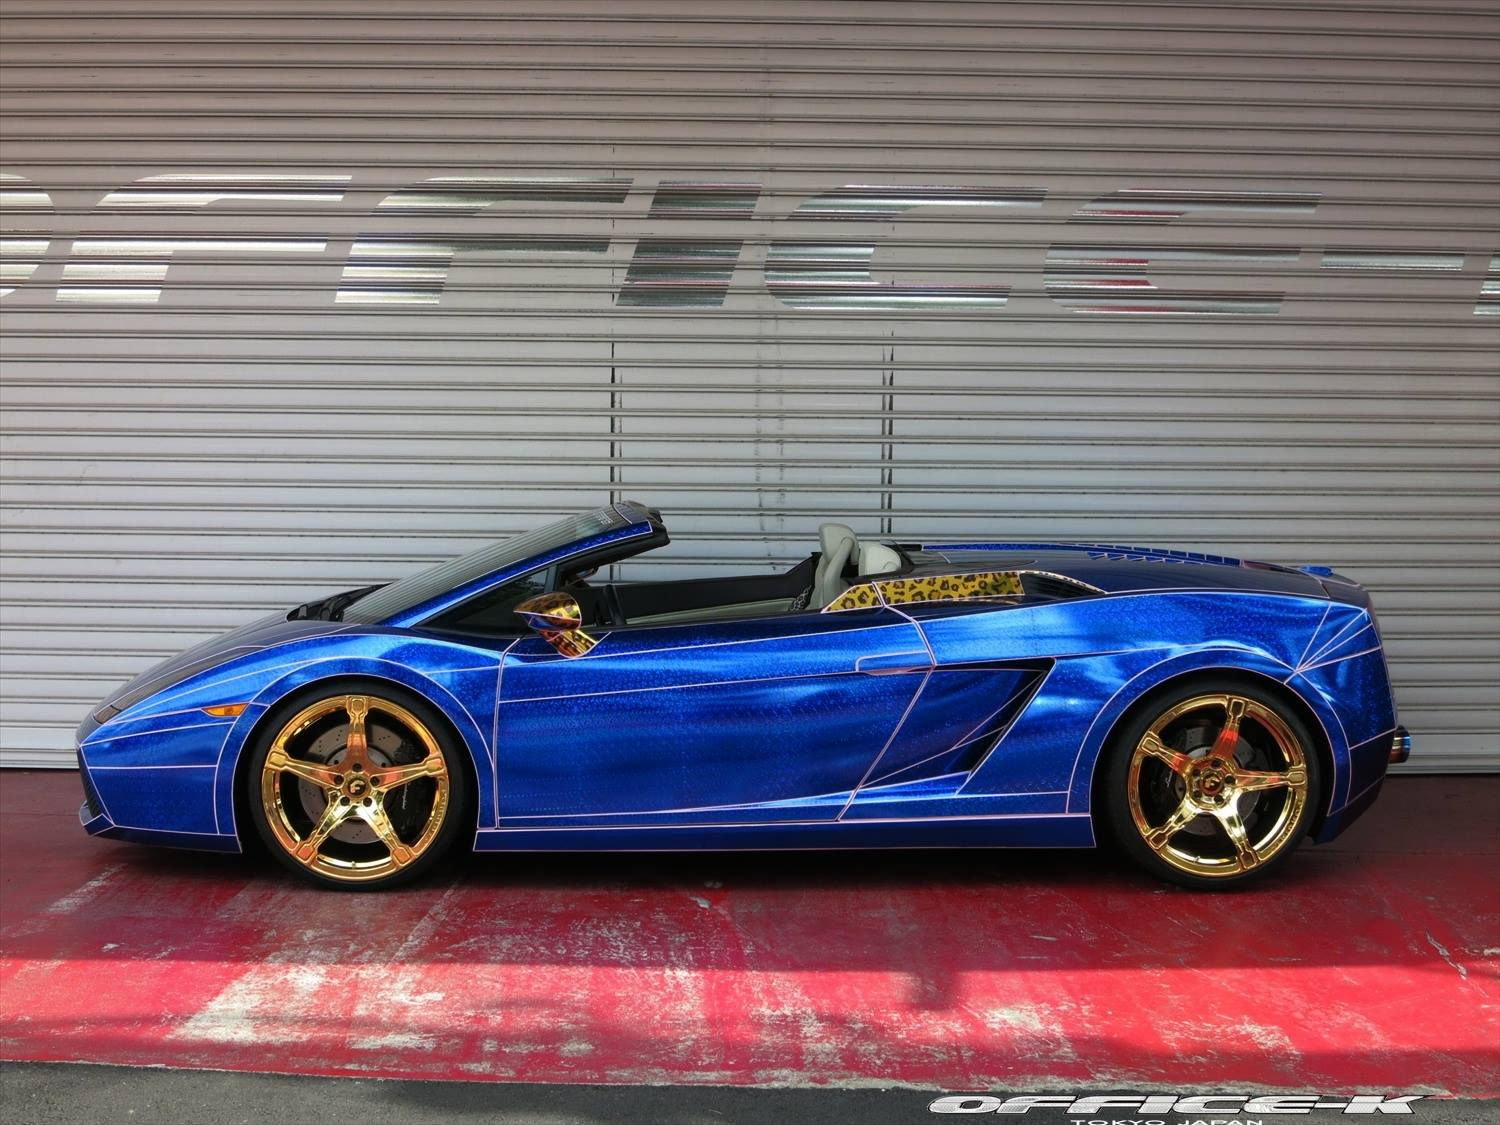 Gallardo Spyder Quot Morohoshi S Special Quot Gets Gold Wheels And